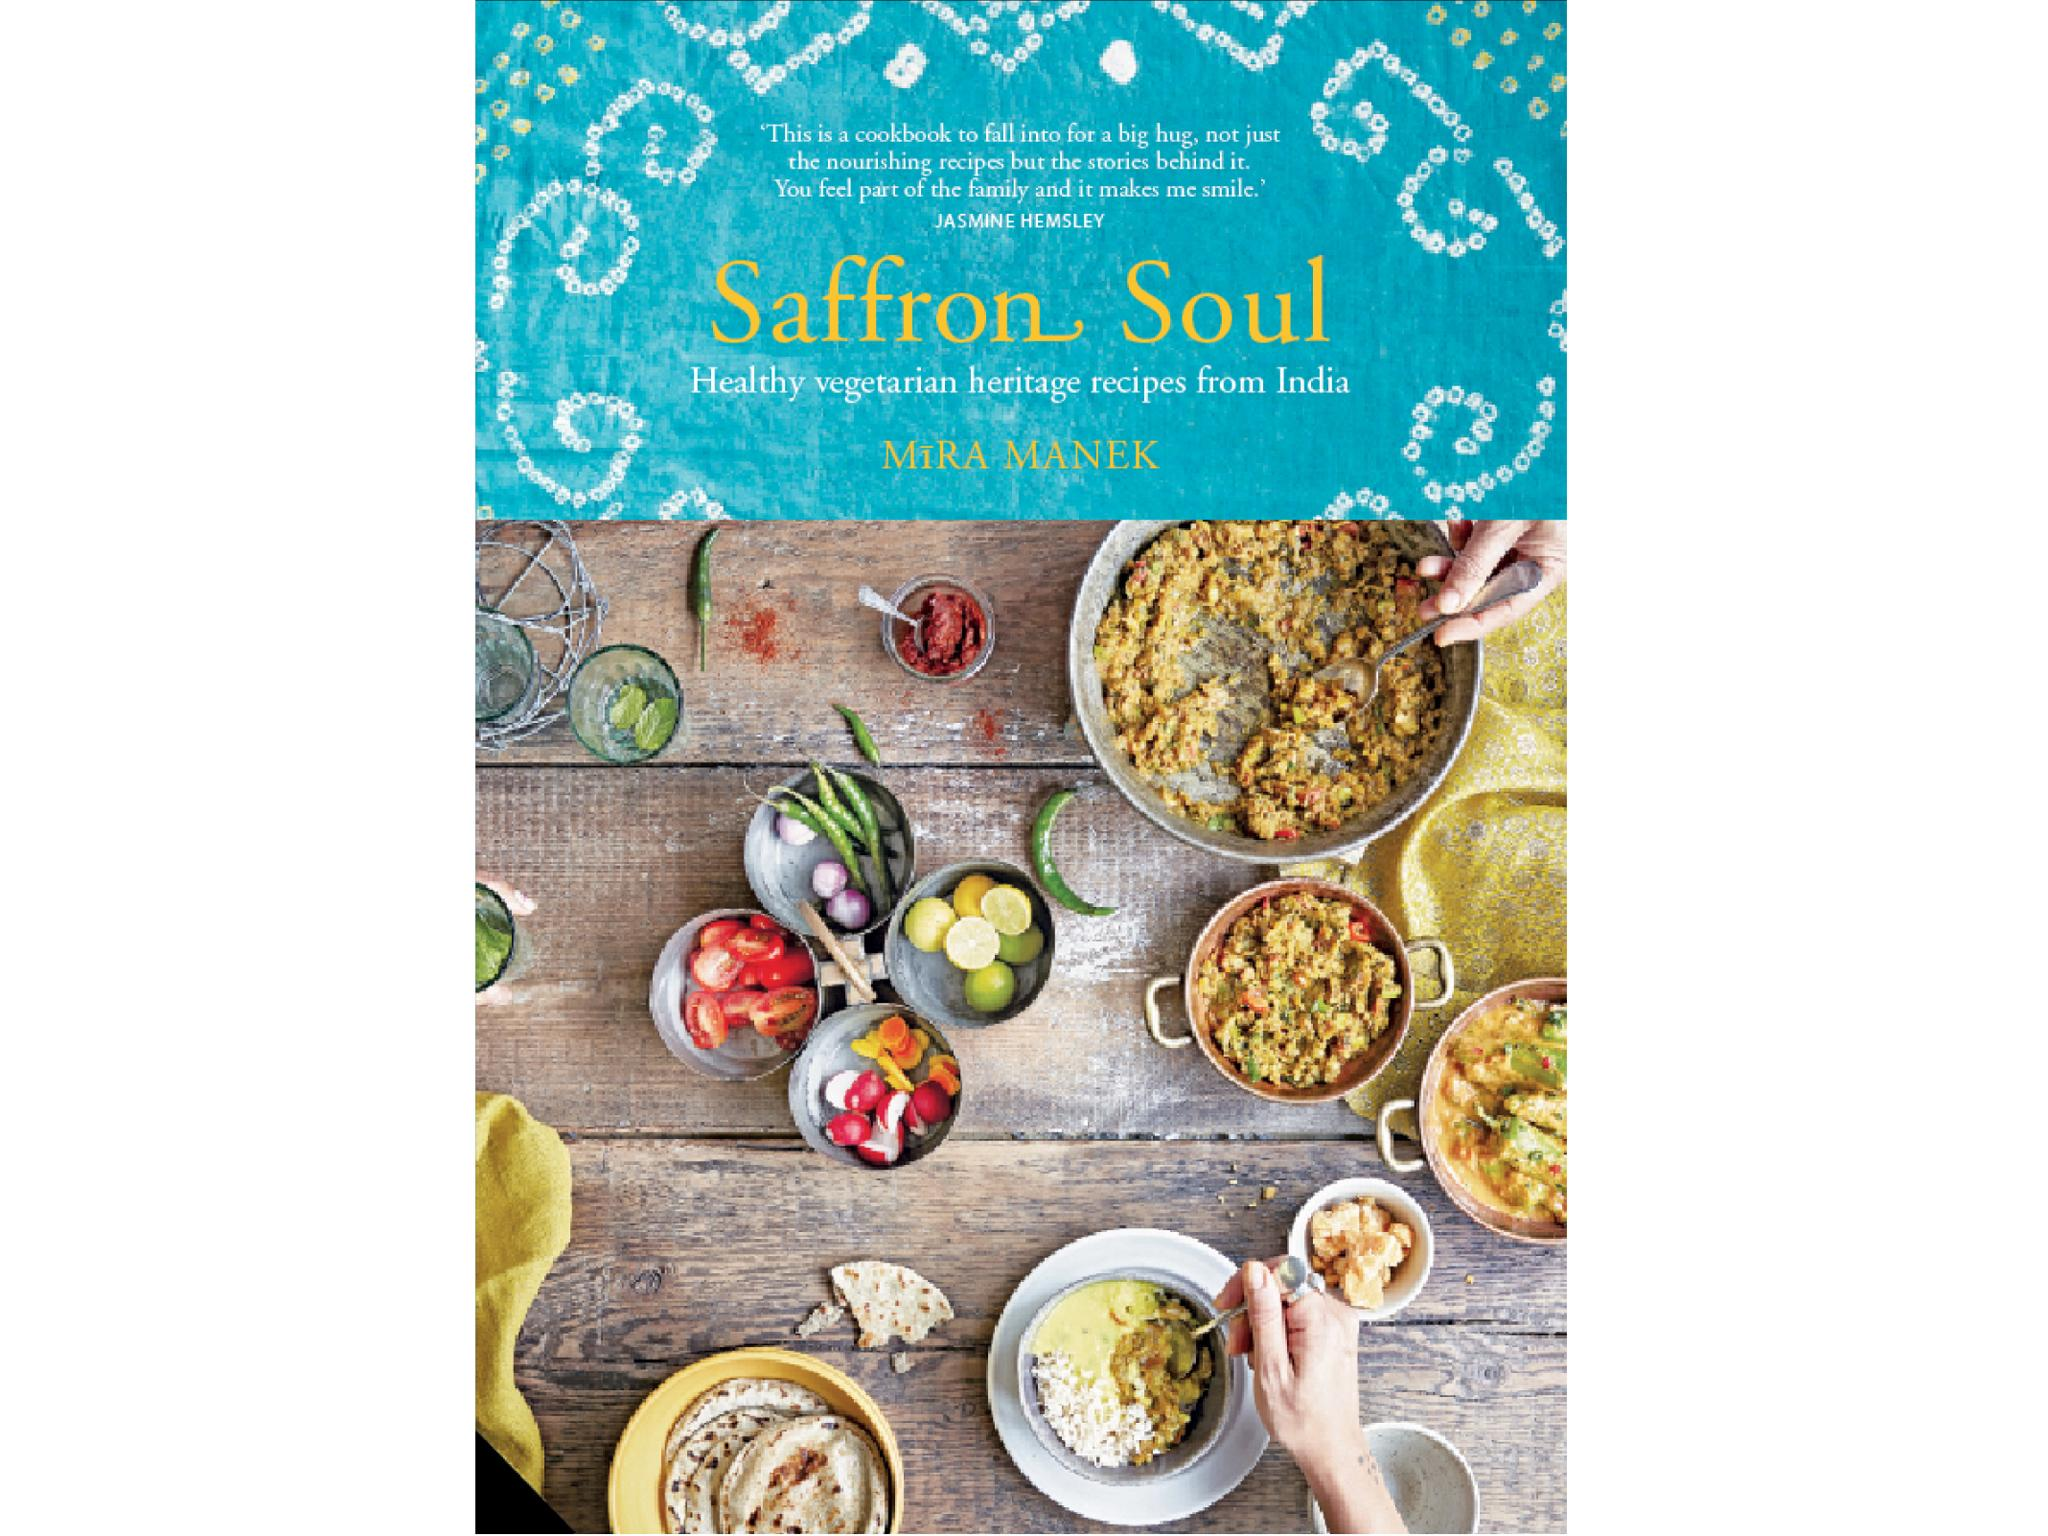 14 best vegetarian cookbooks the independent 8 saffron soul healthy vegetarian heritage recipes from india by mira manek 20 jacqui small solutioingenieria Choice Image